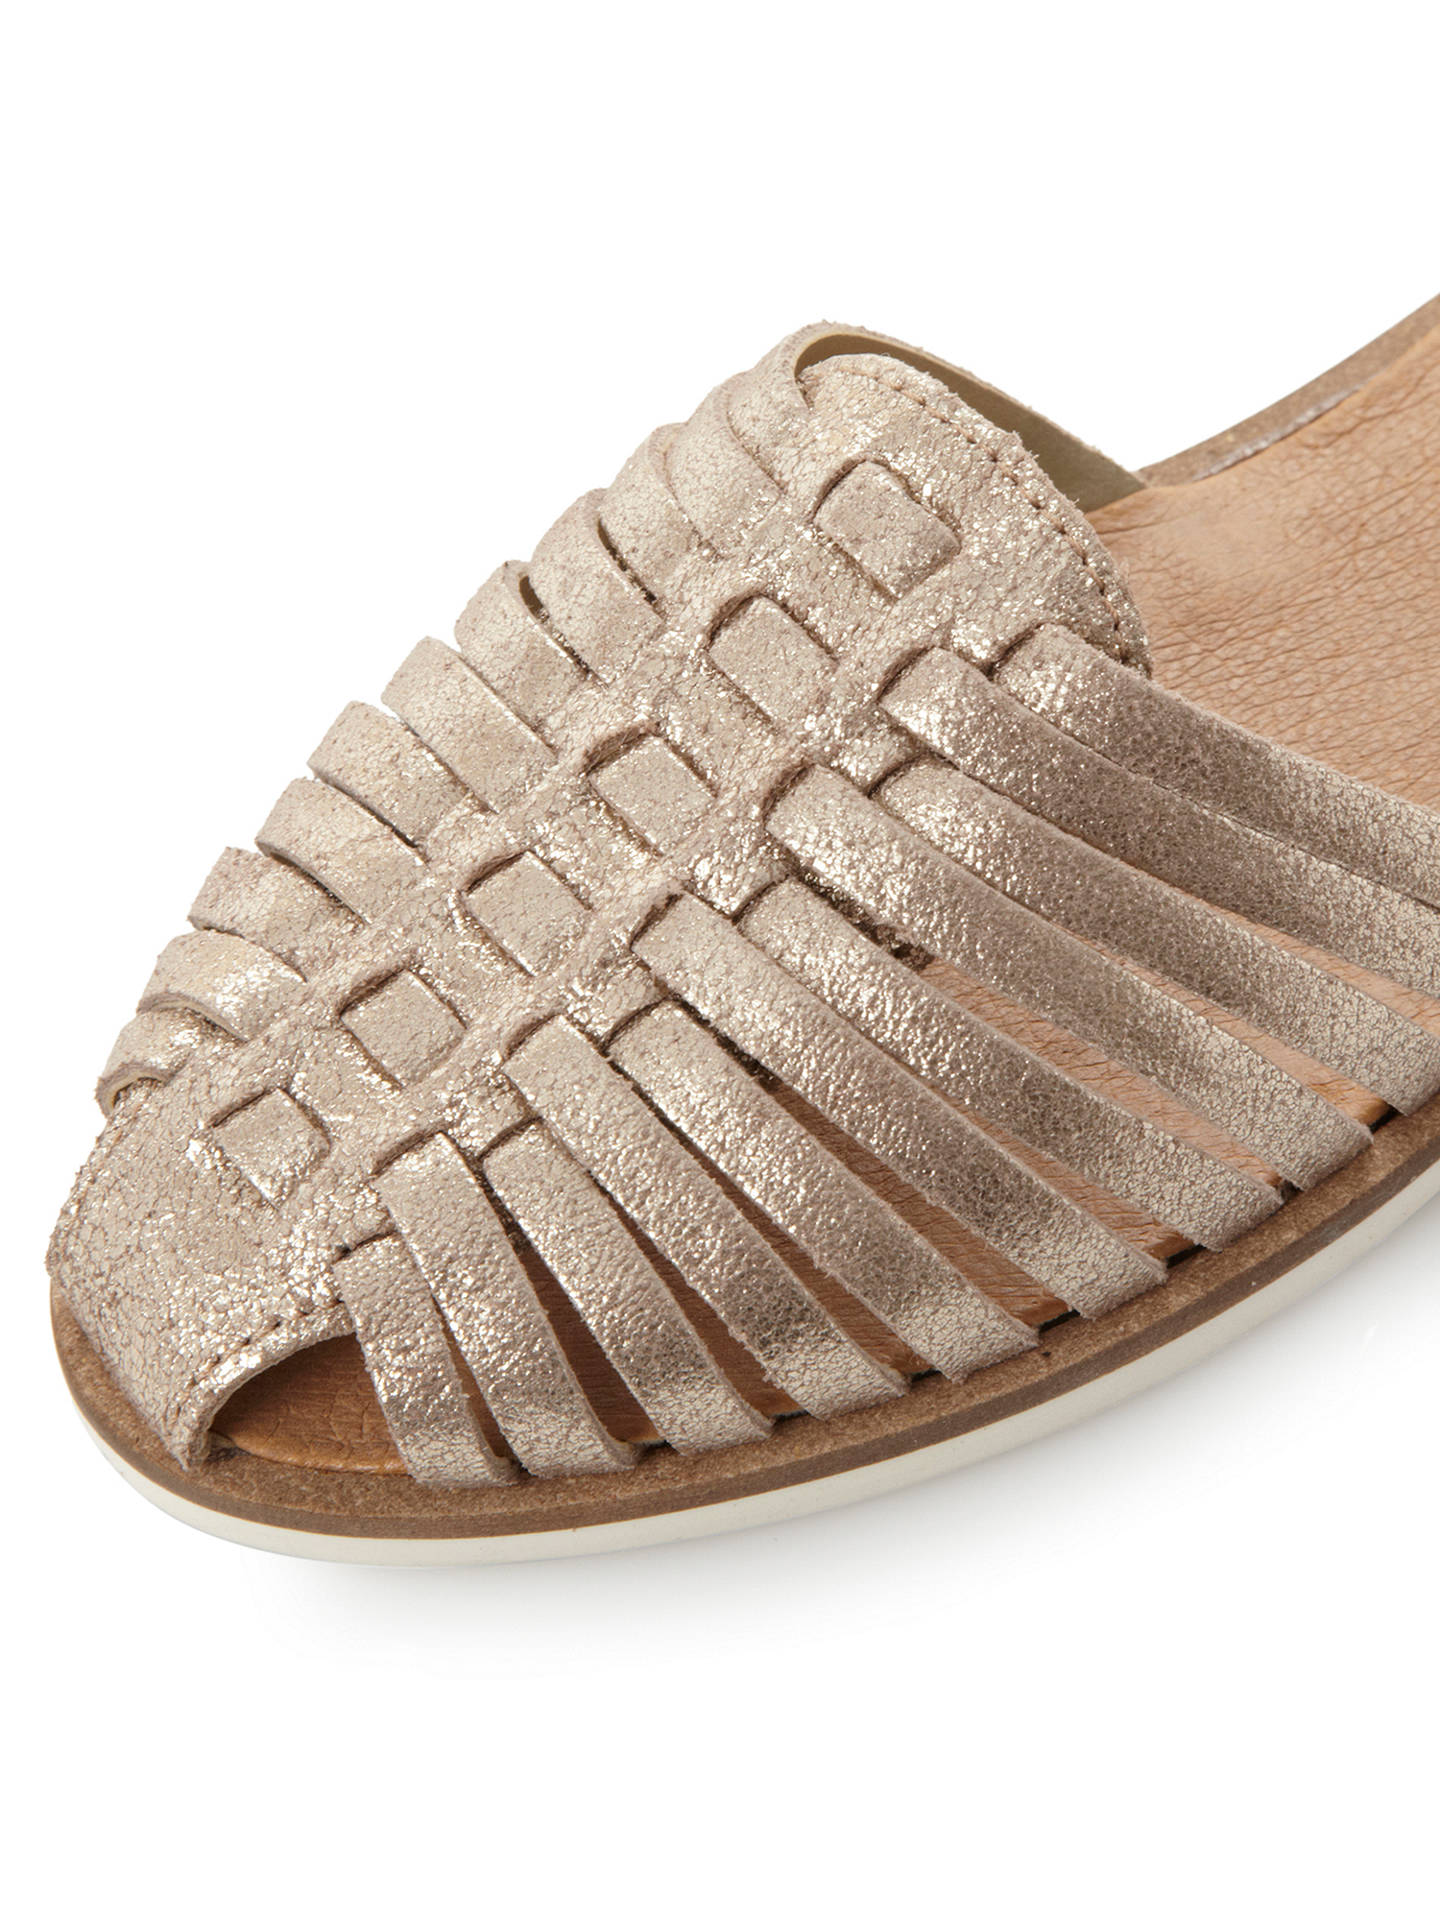 dbfa974c5c22 ... Buy Steve Madden Hillarie Woven Two Part Huarache Shoes